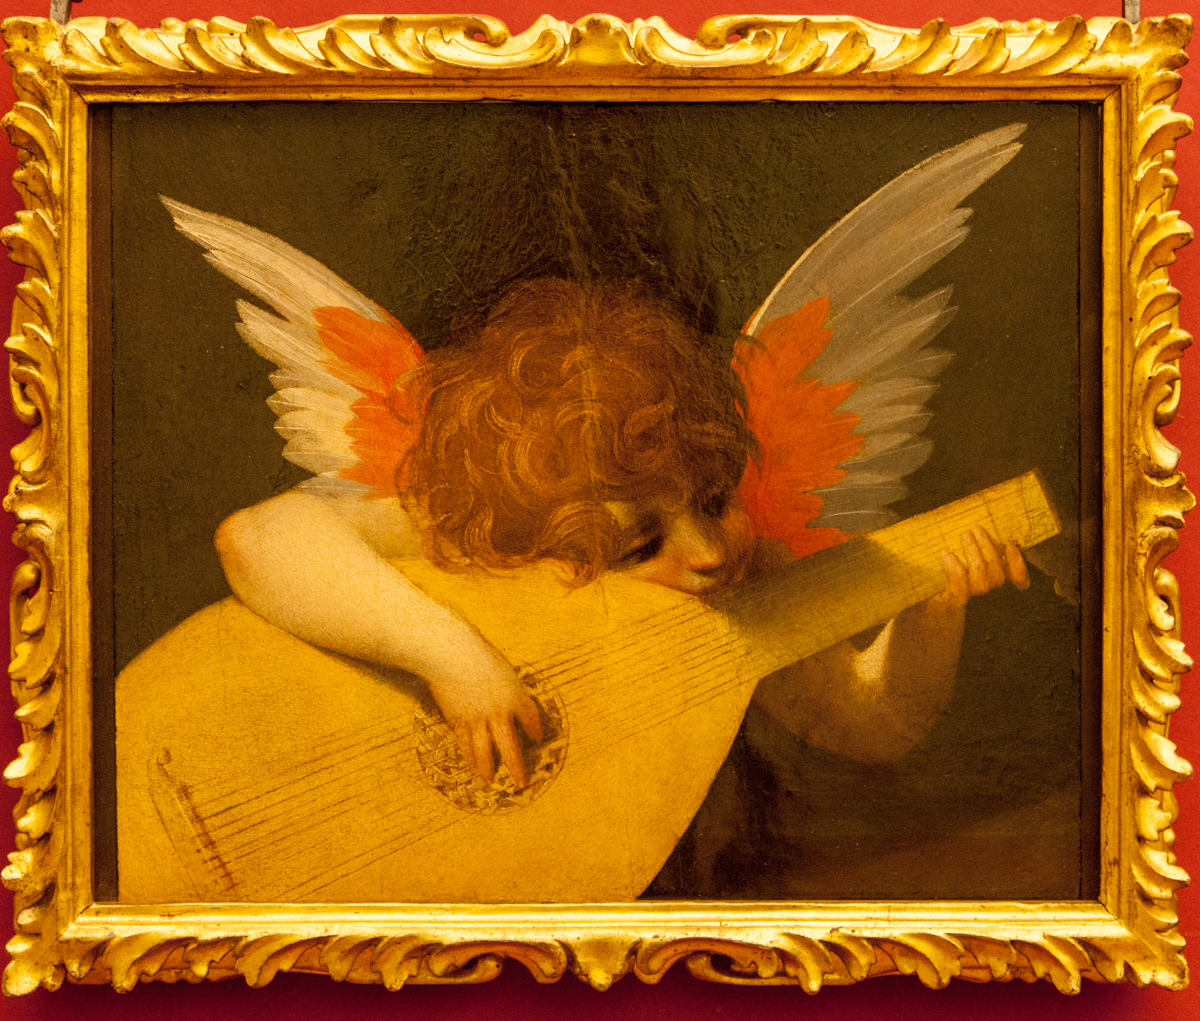 Musical Angel by Giovan Battista di Jacopo, Uffizi Gallery, Florence, Italy